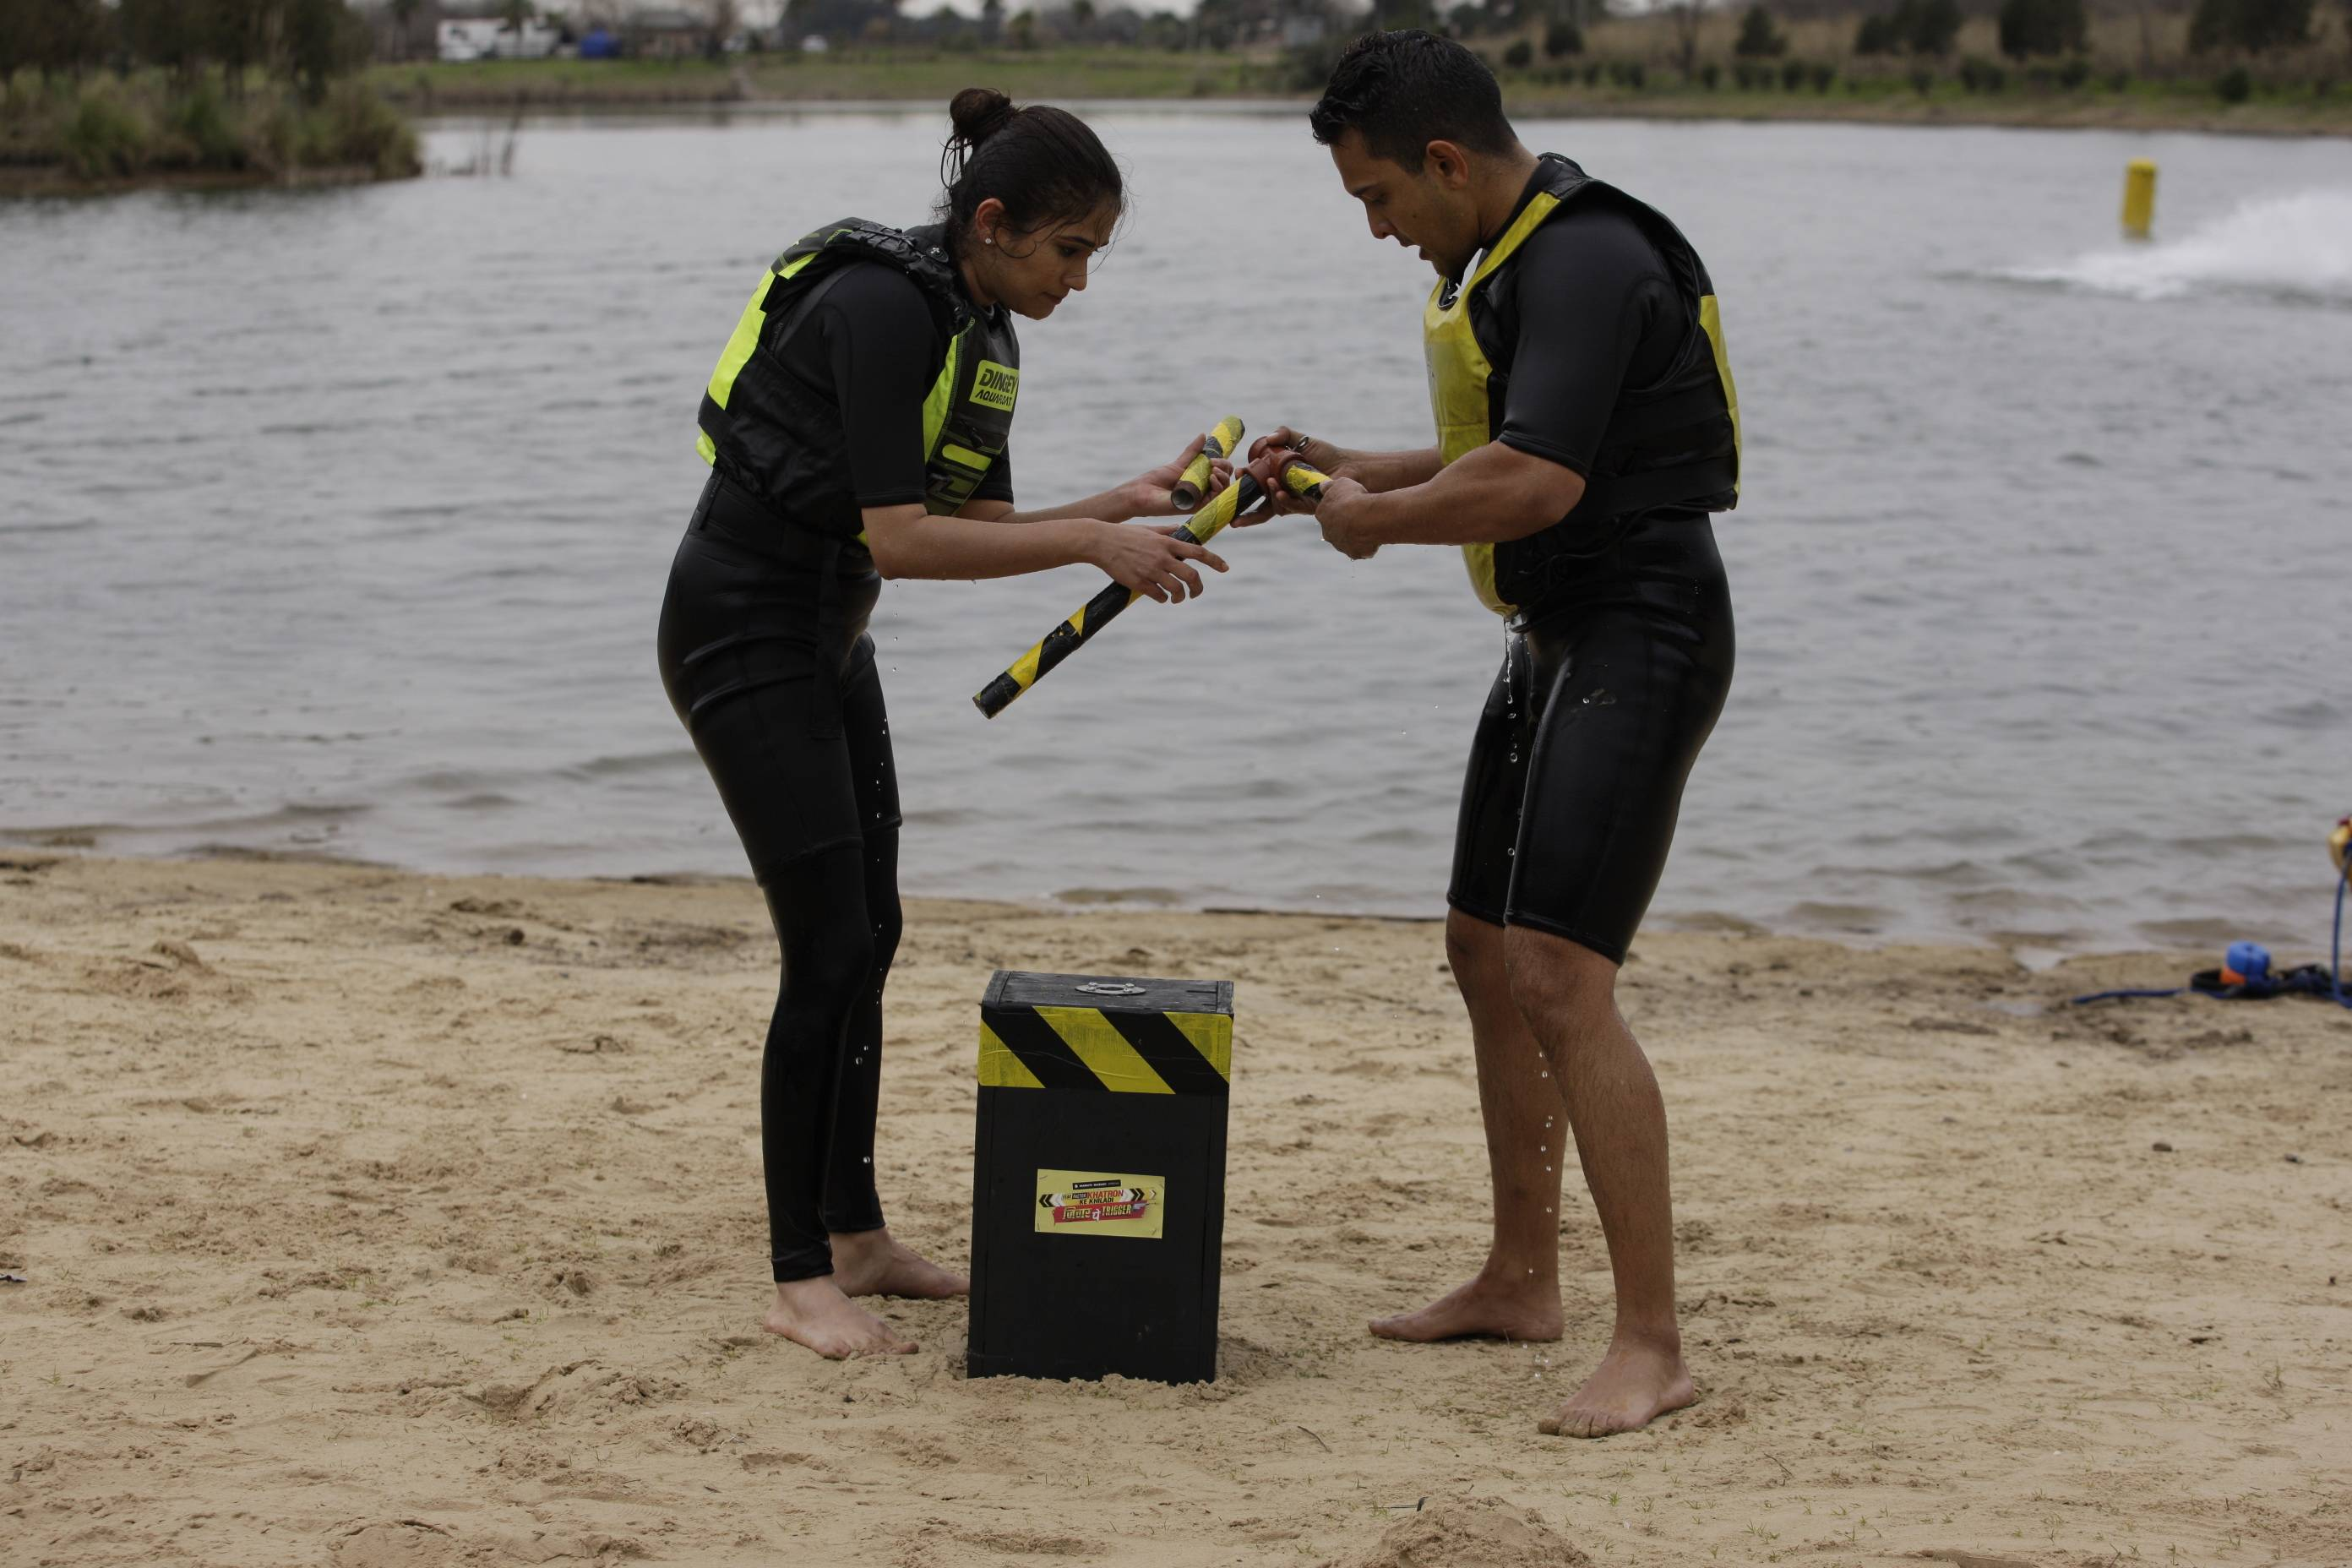 The Ultimate Six Champions of Khatron Ke Khiladi Season 9